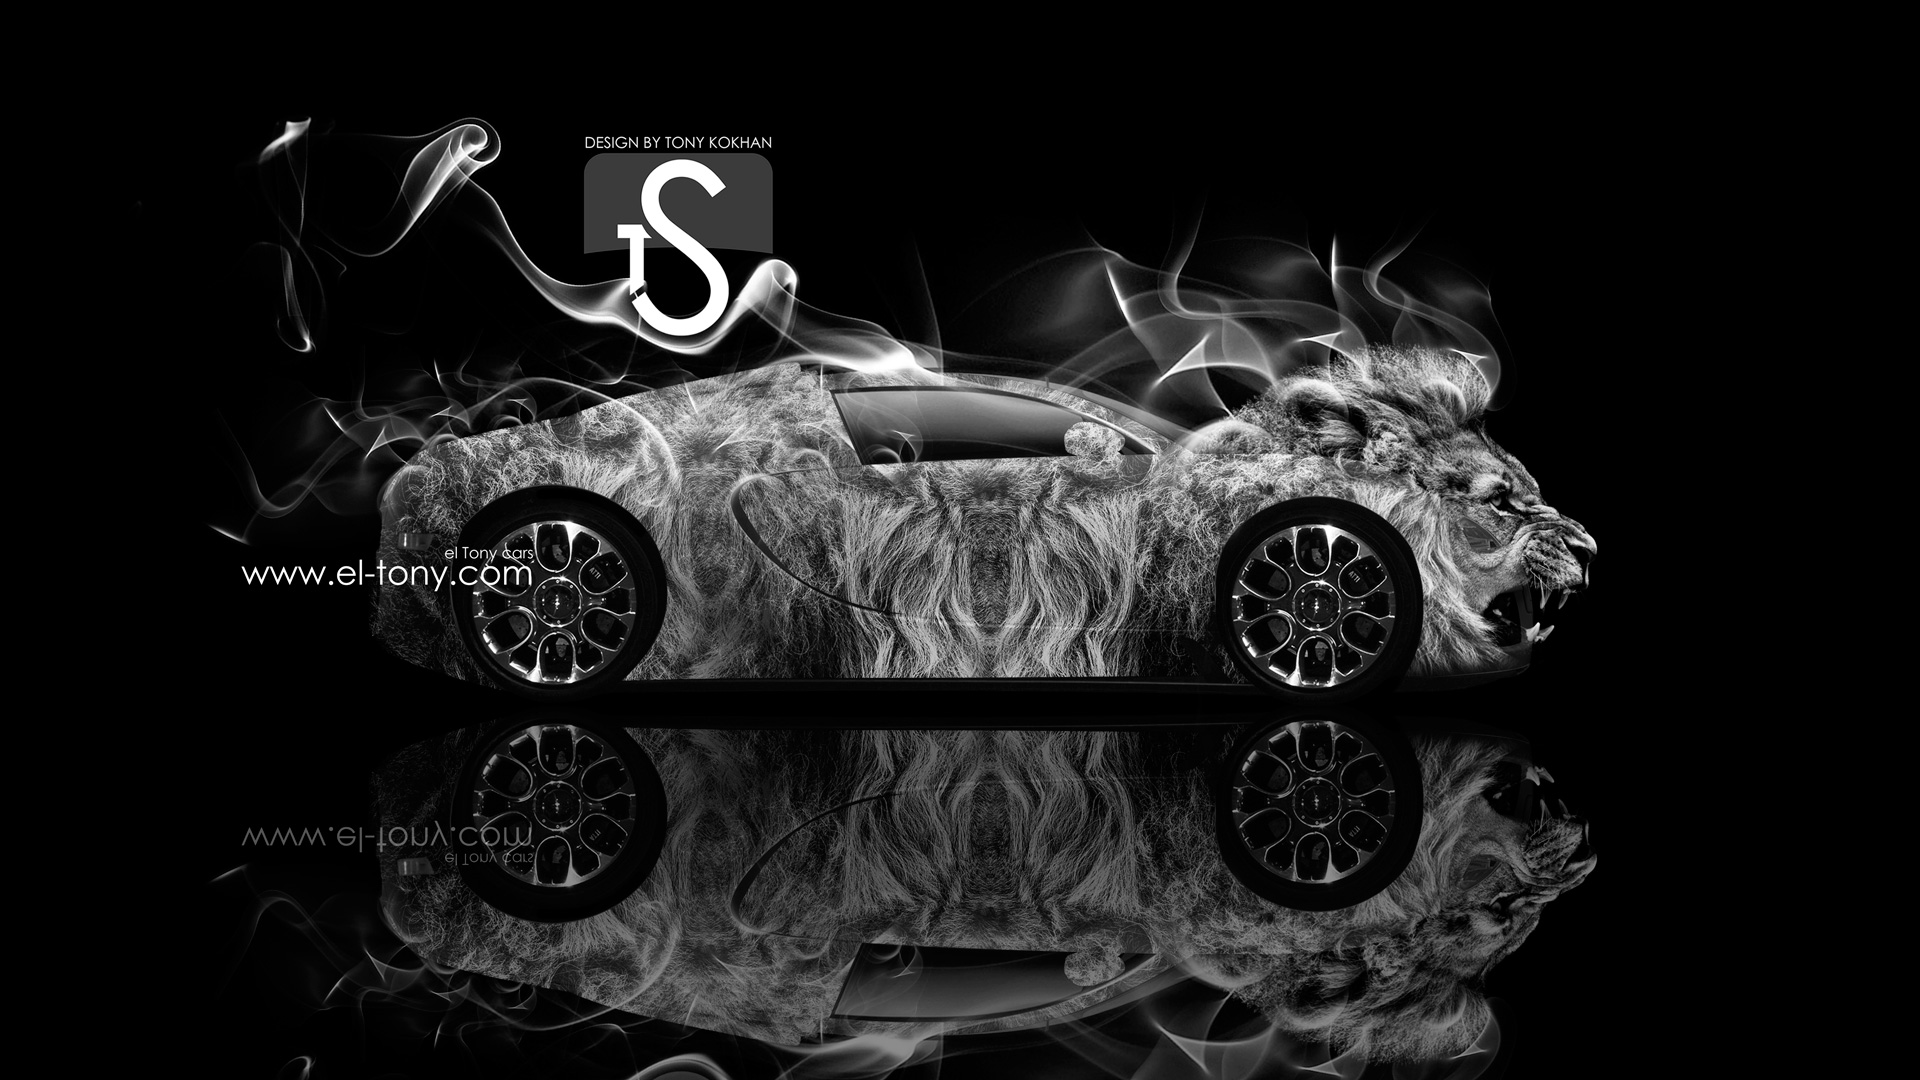 Gentil Bugatti Veyron Lion Smoke Power Car 2013 Silver